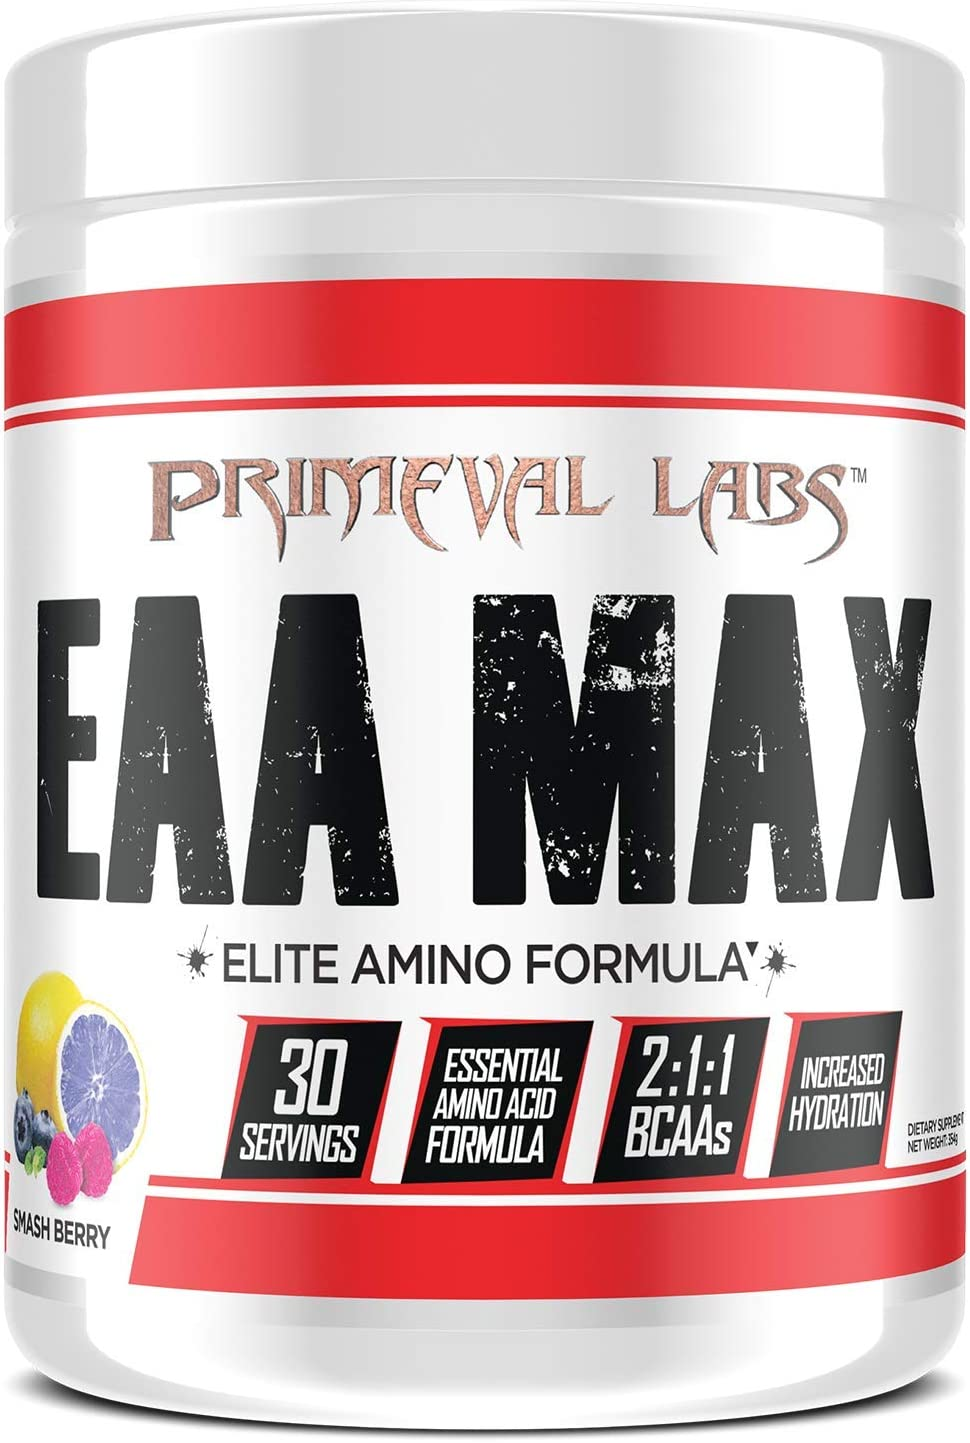 Primeval Labs EAA Max, Amino Acid Supplements, BCAAs, EAAs, Electrolytes, Enhances Performance, Supports Hydration, Improves Metabolism, Smash Berry, 30 Servings